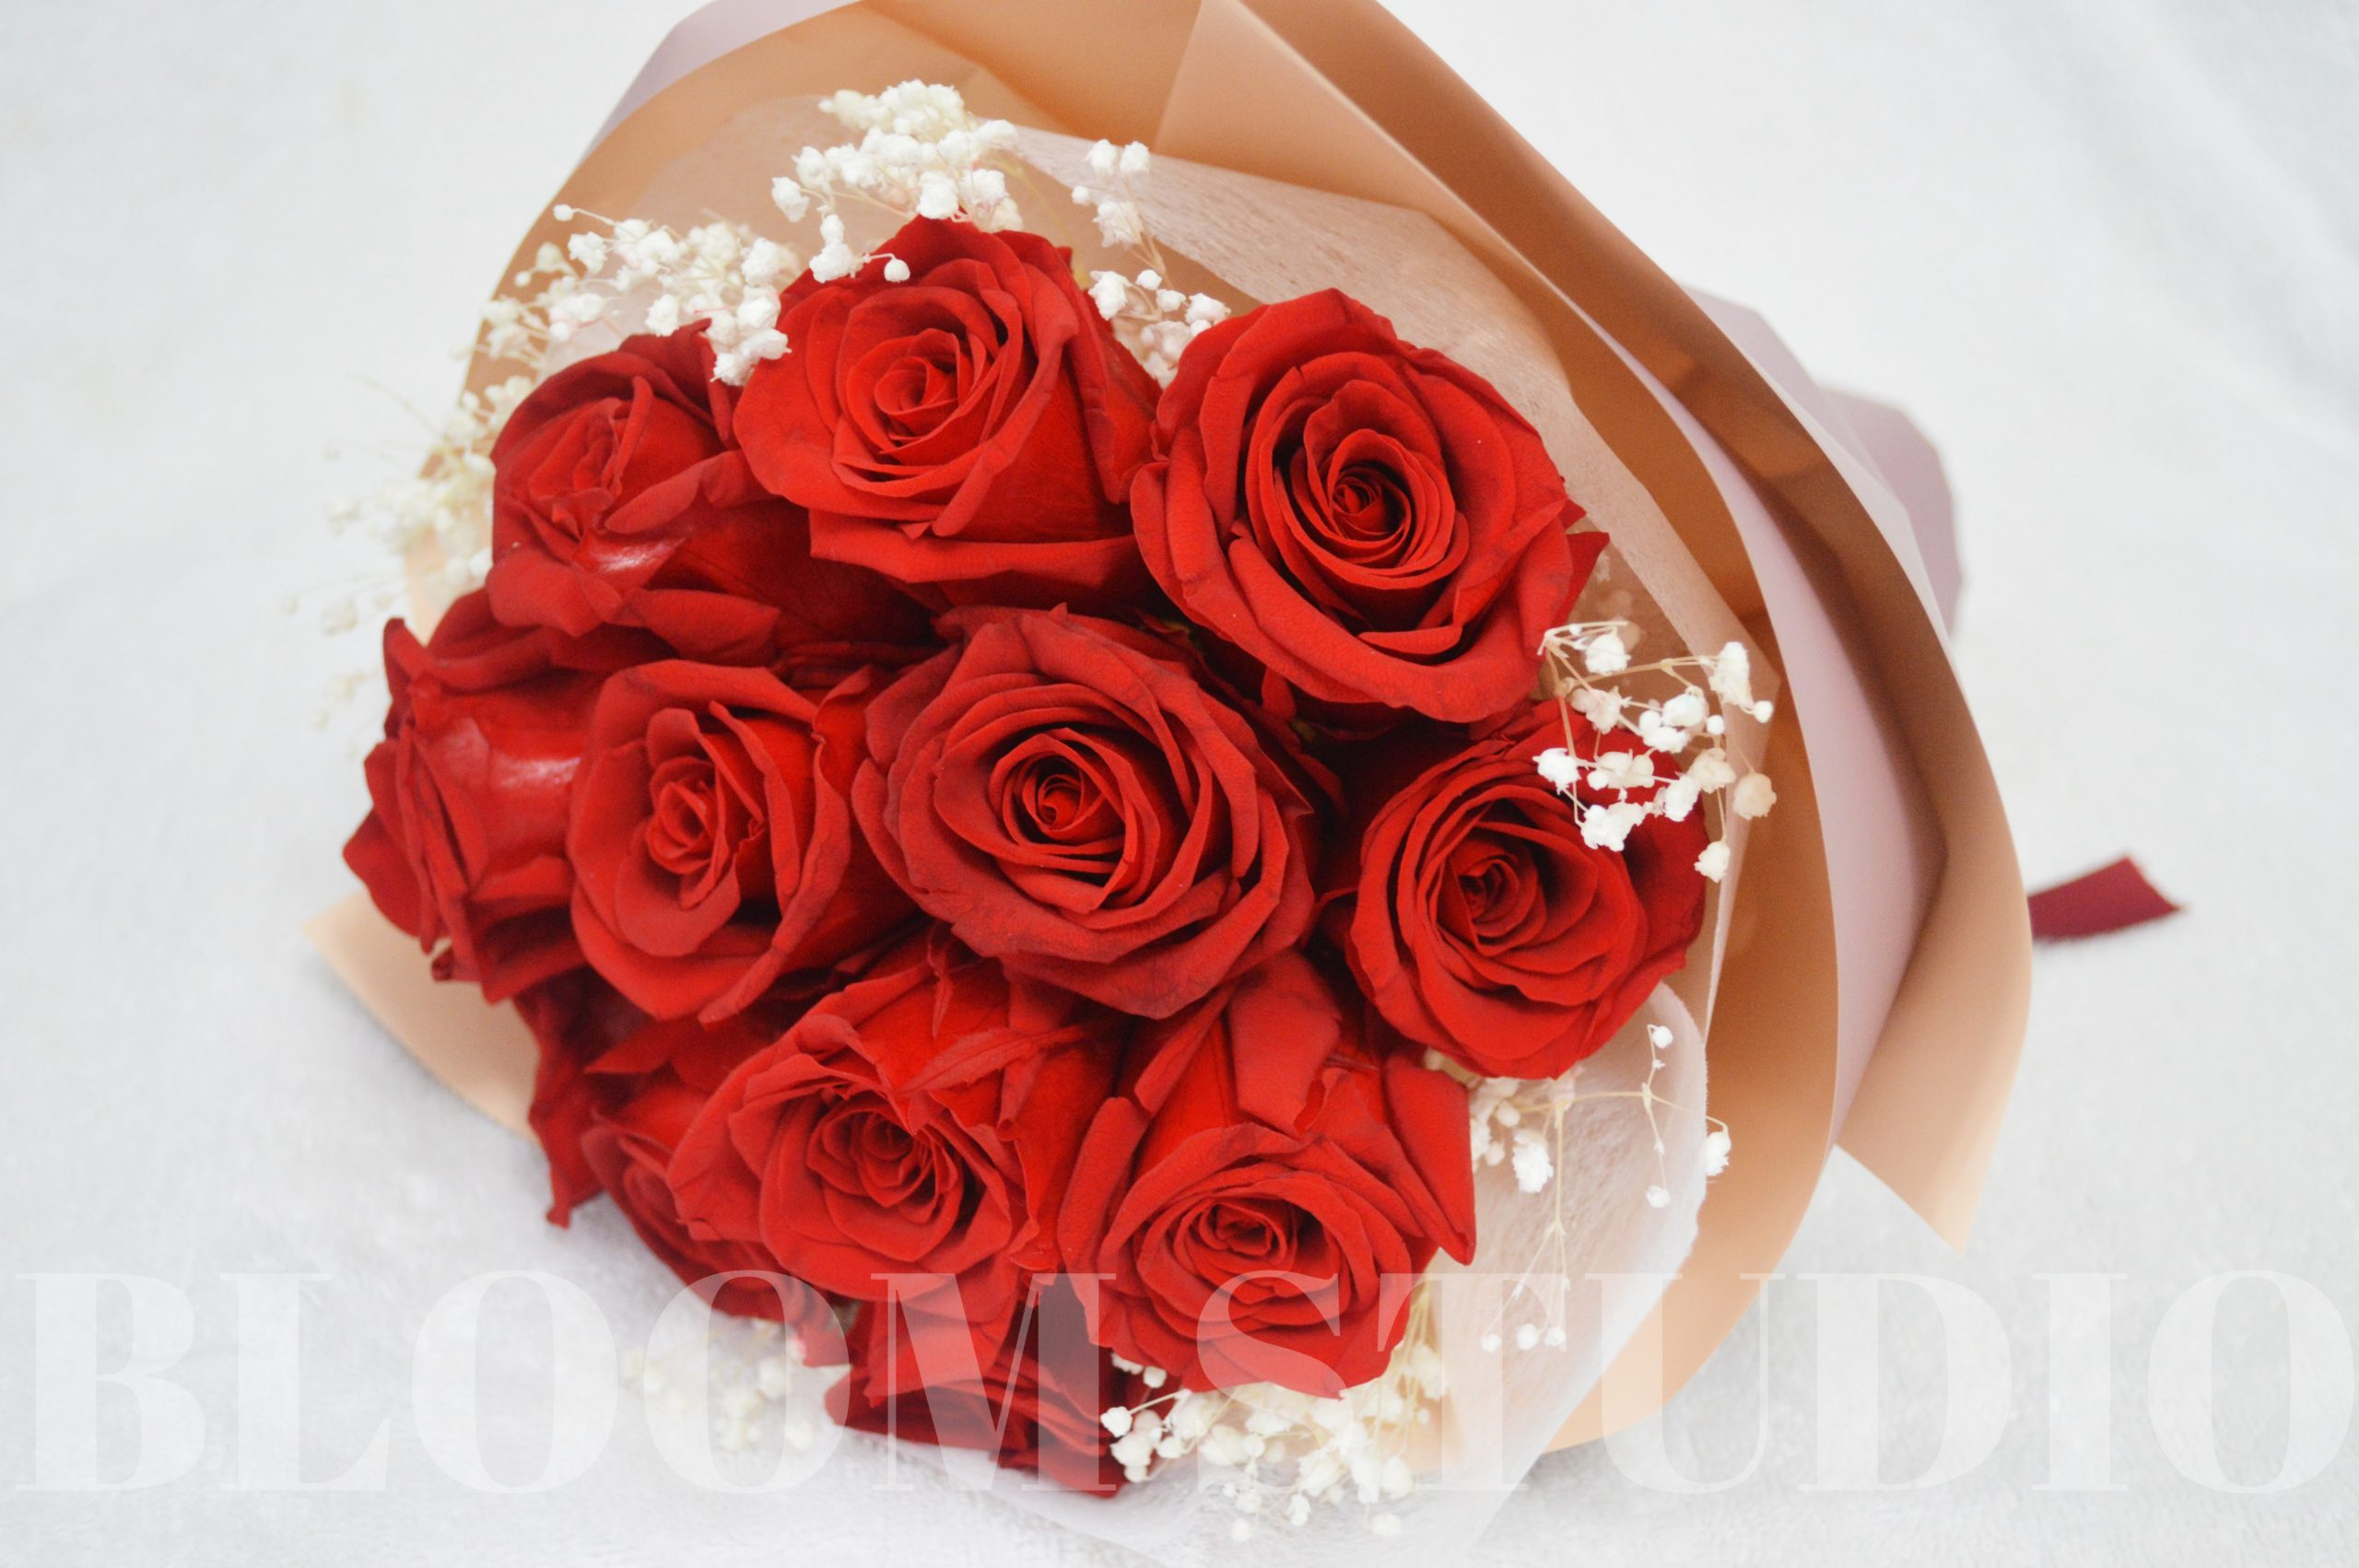 12 preserved rose bouquet